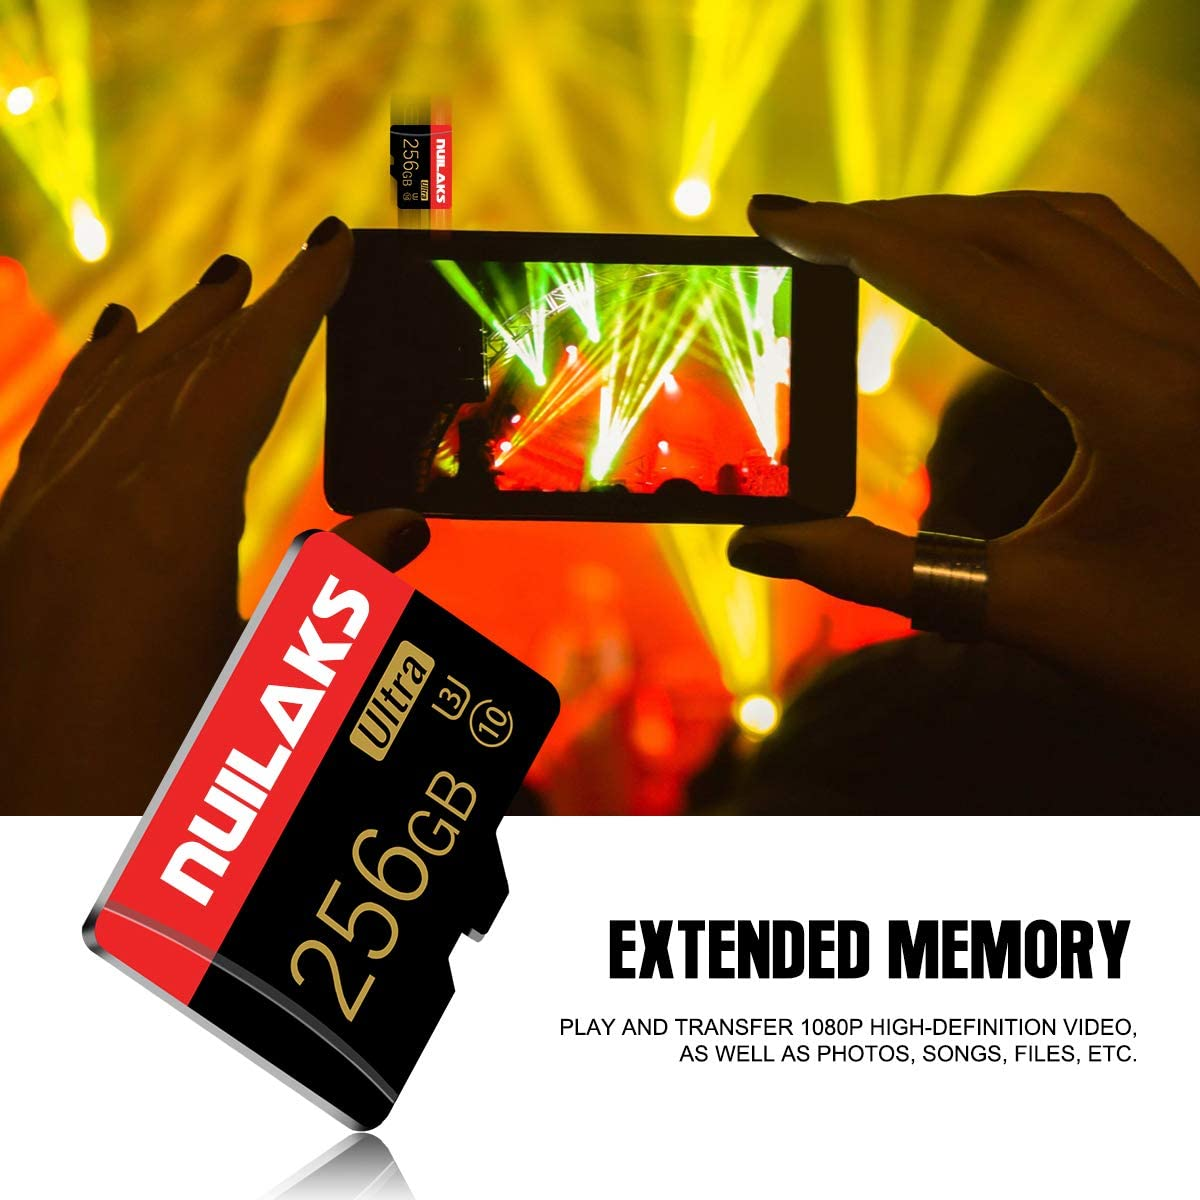 256GB Micro SD Card with Adapter SD Memory Cards for Camera (Class 10 High Speed), Memory Card for Phone Computer Game Console, Dash Cam, Camcorder, GPS, Surveillance, Drone(256GB)